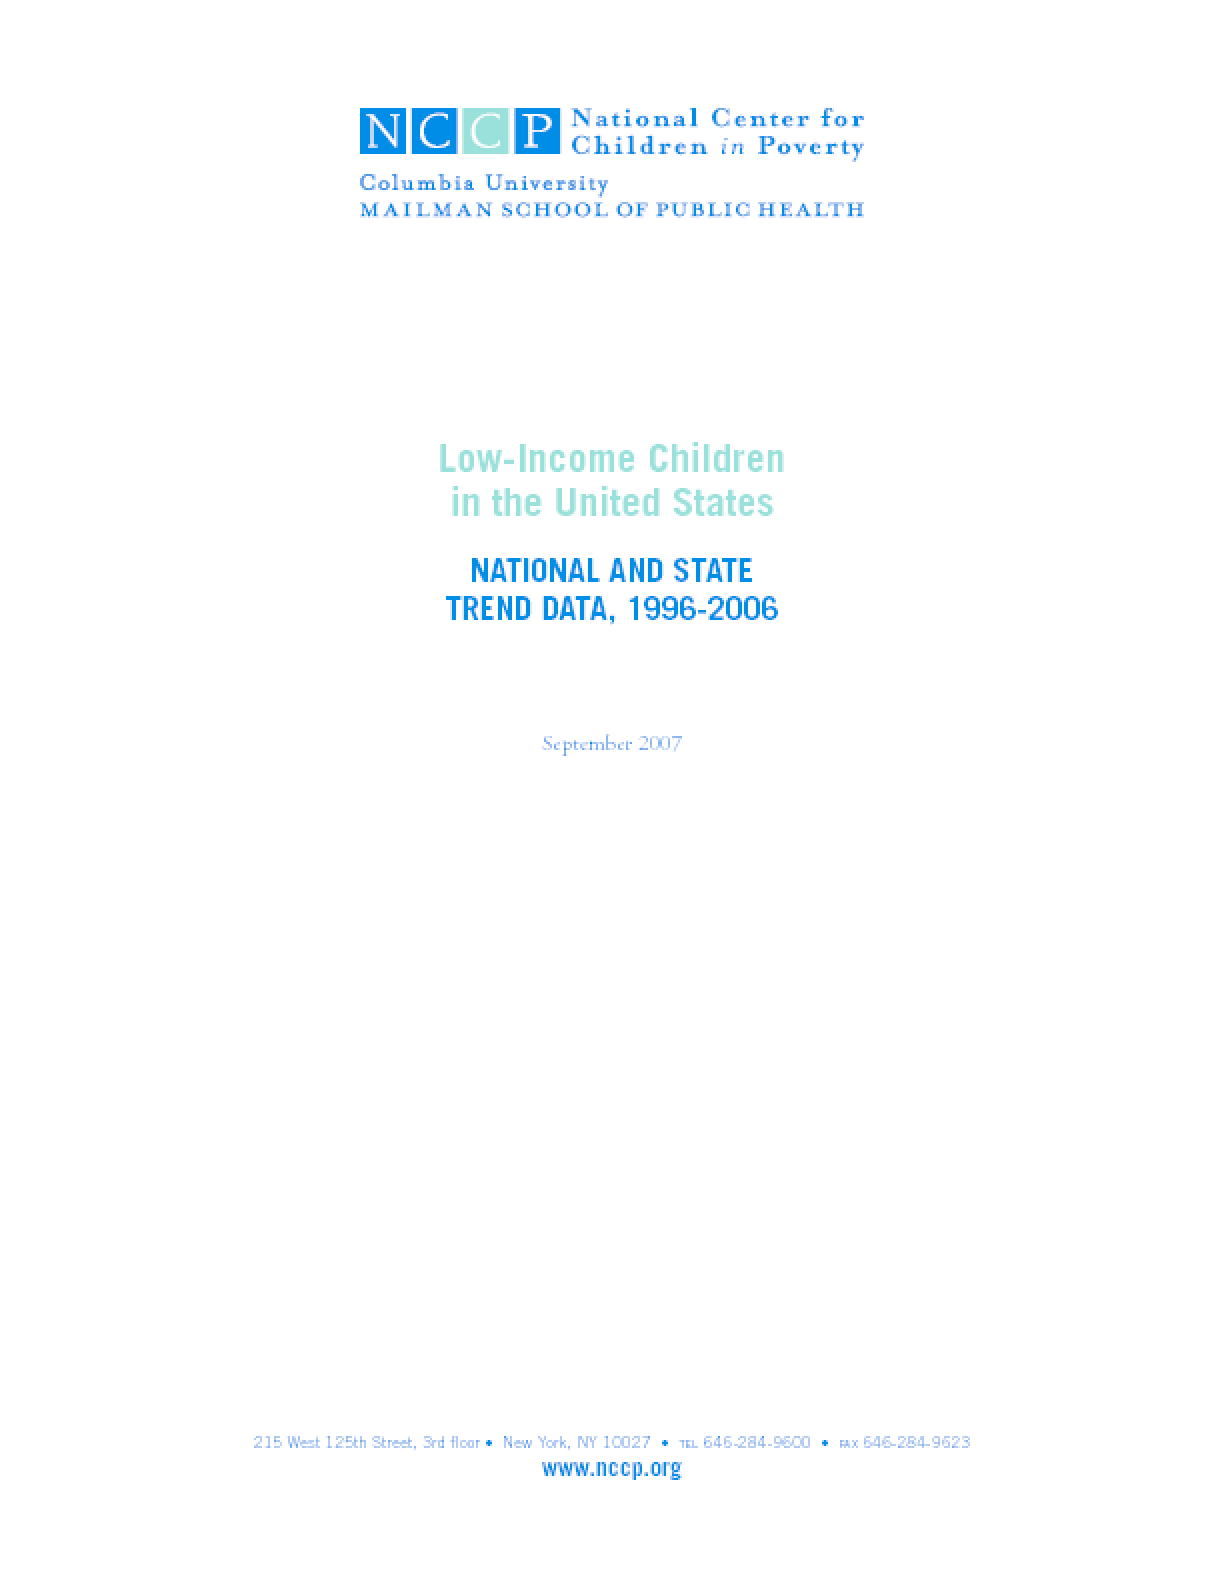 Low-Income Children in the United States: National and State Trend Data, 1996-2006